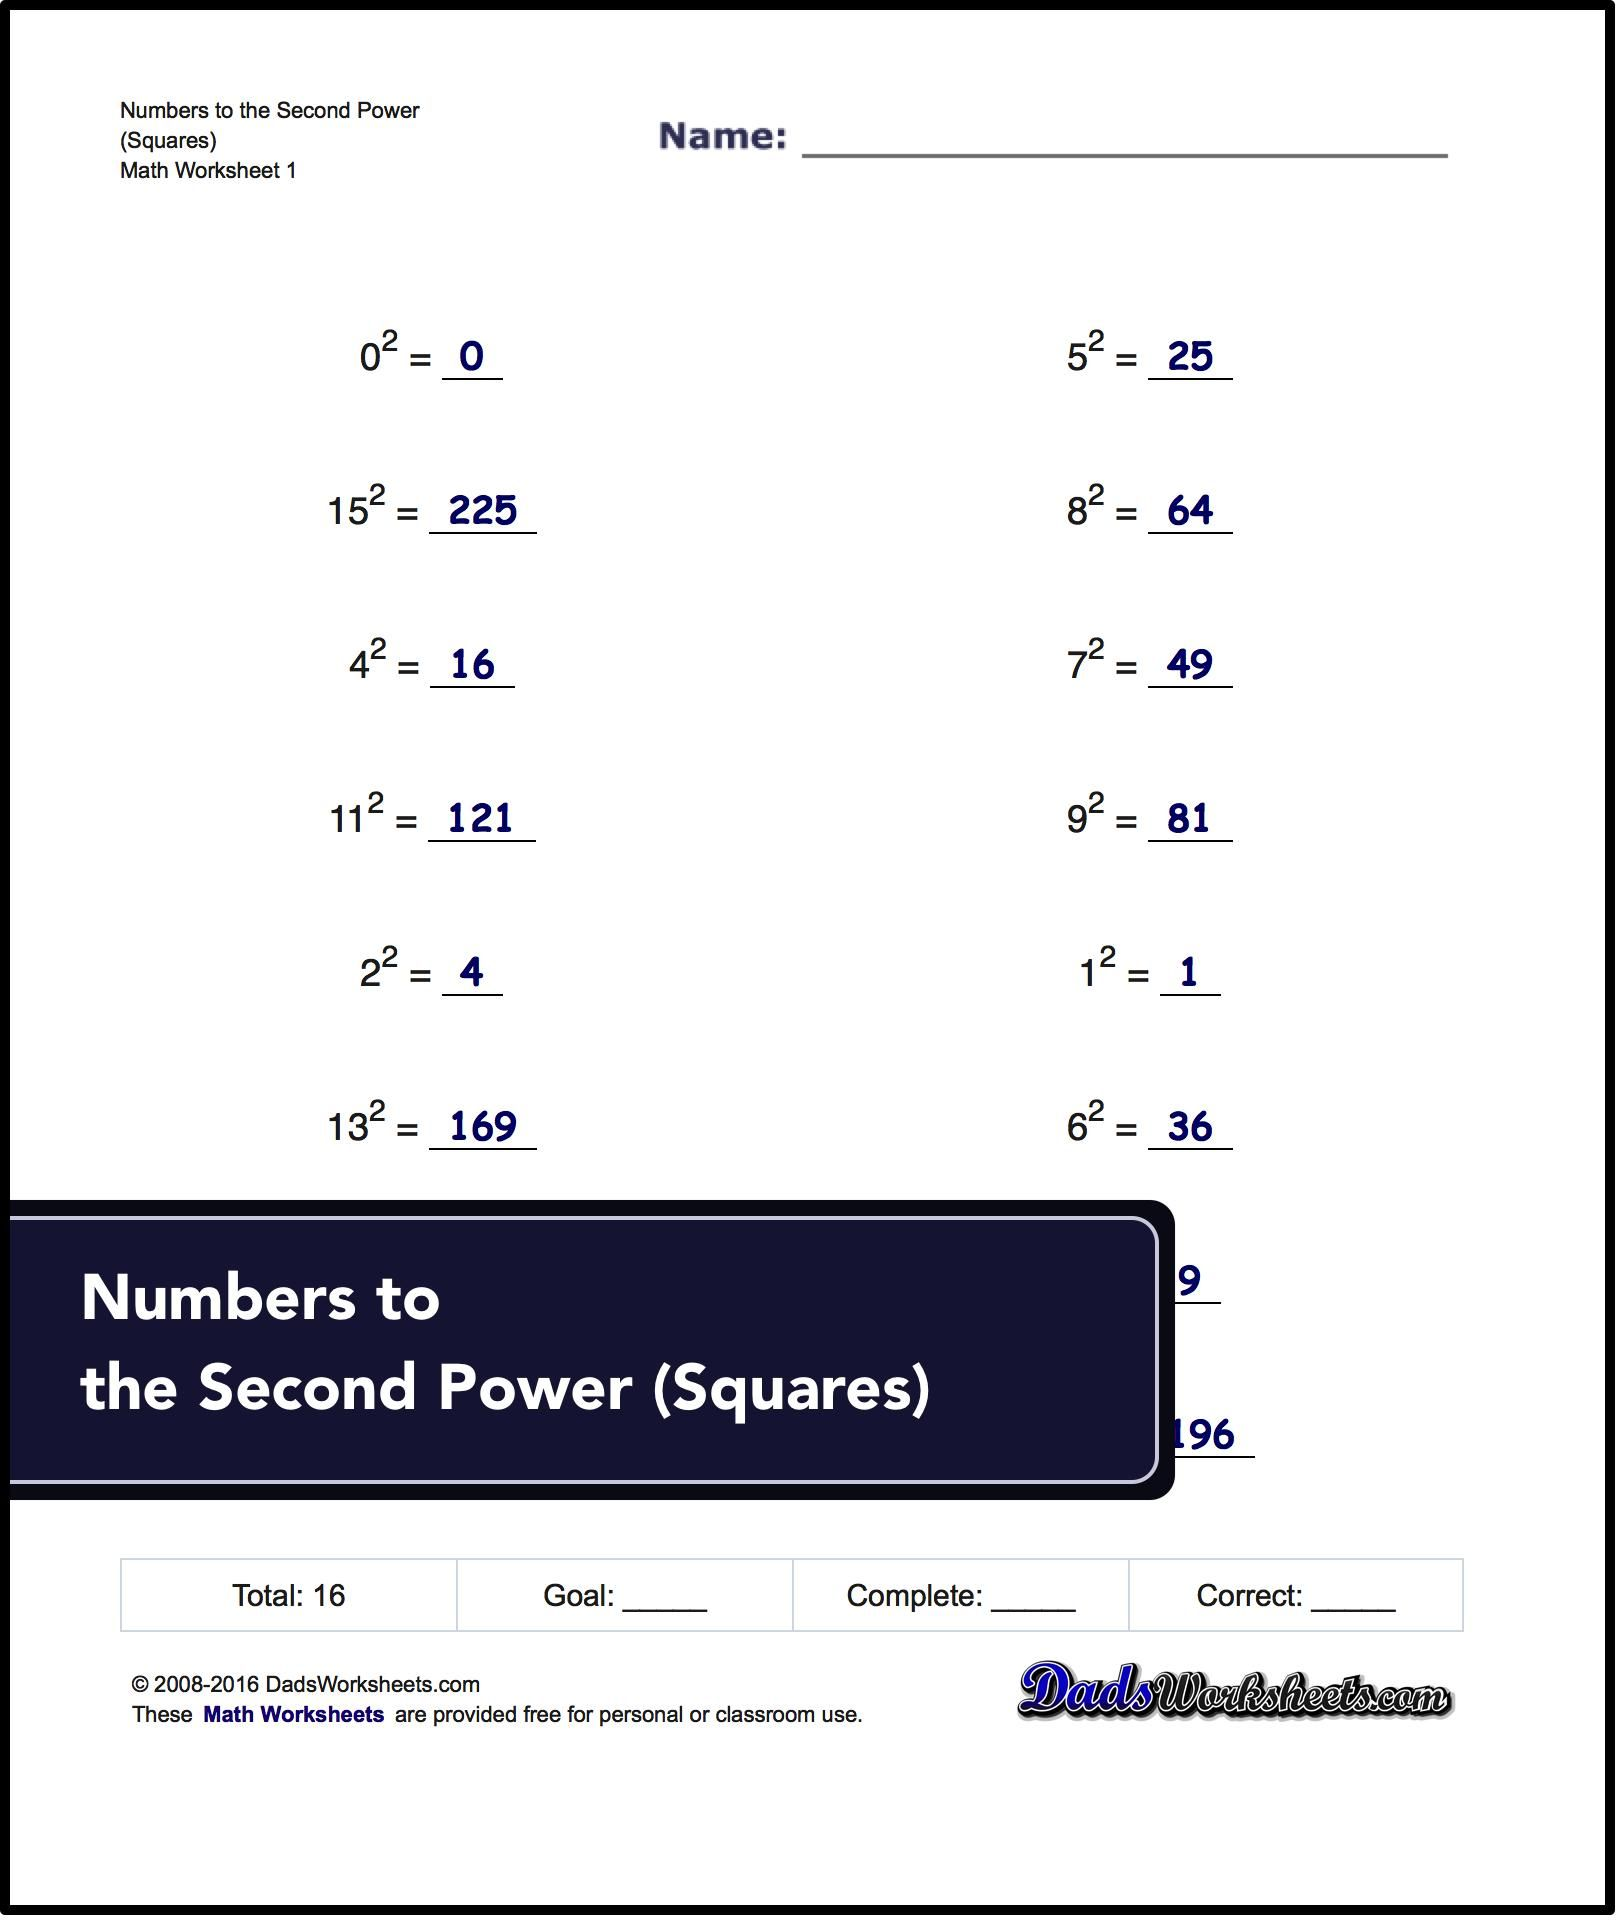 worksheet Syntax Worksheets practice exponents worksheets introducing exponent syntax calculation of simple powers ten and